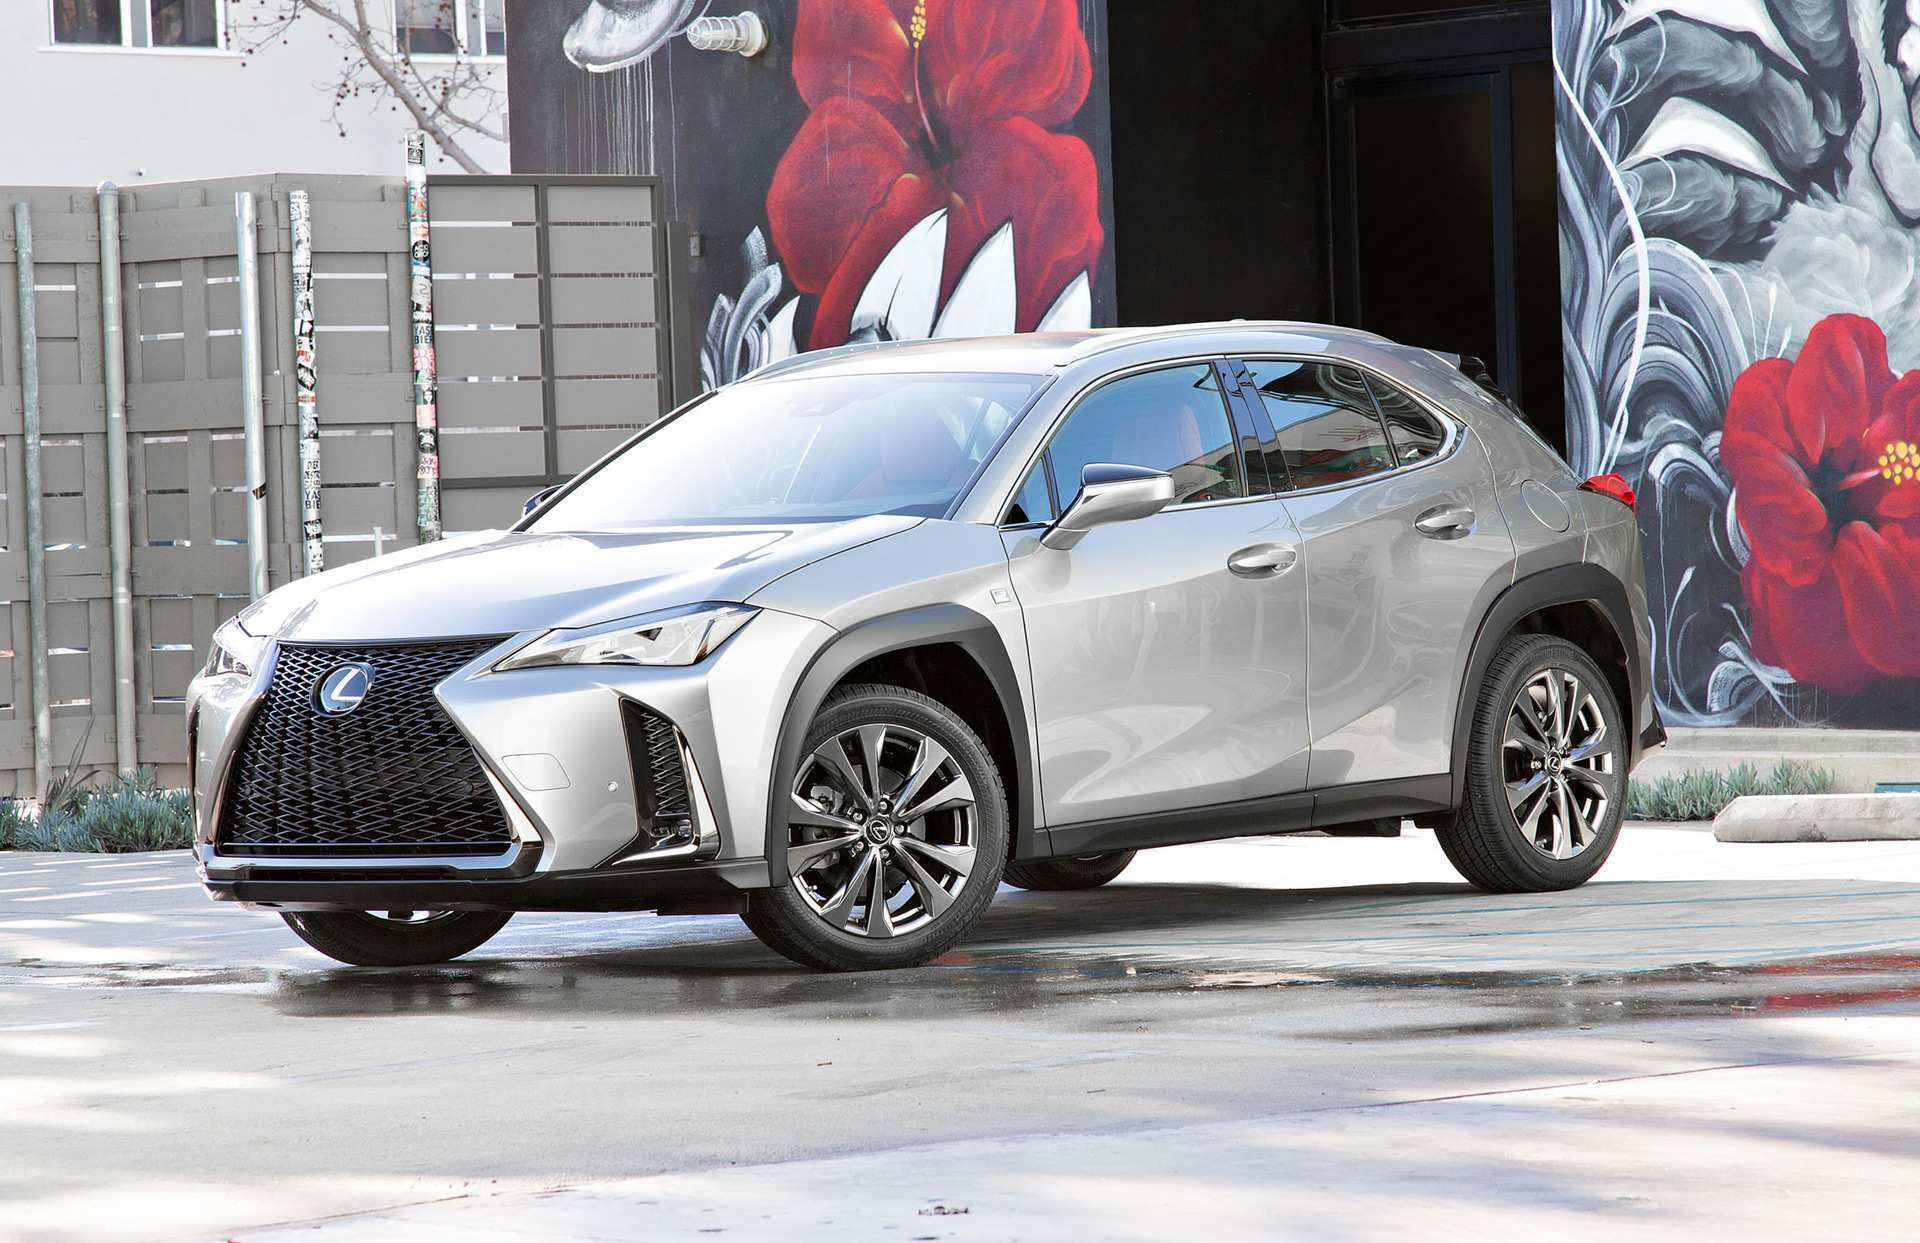 86 Best Review 2019 Lexus Suv Spy Shoot by 2019 Lexus Suv